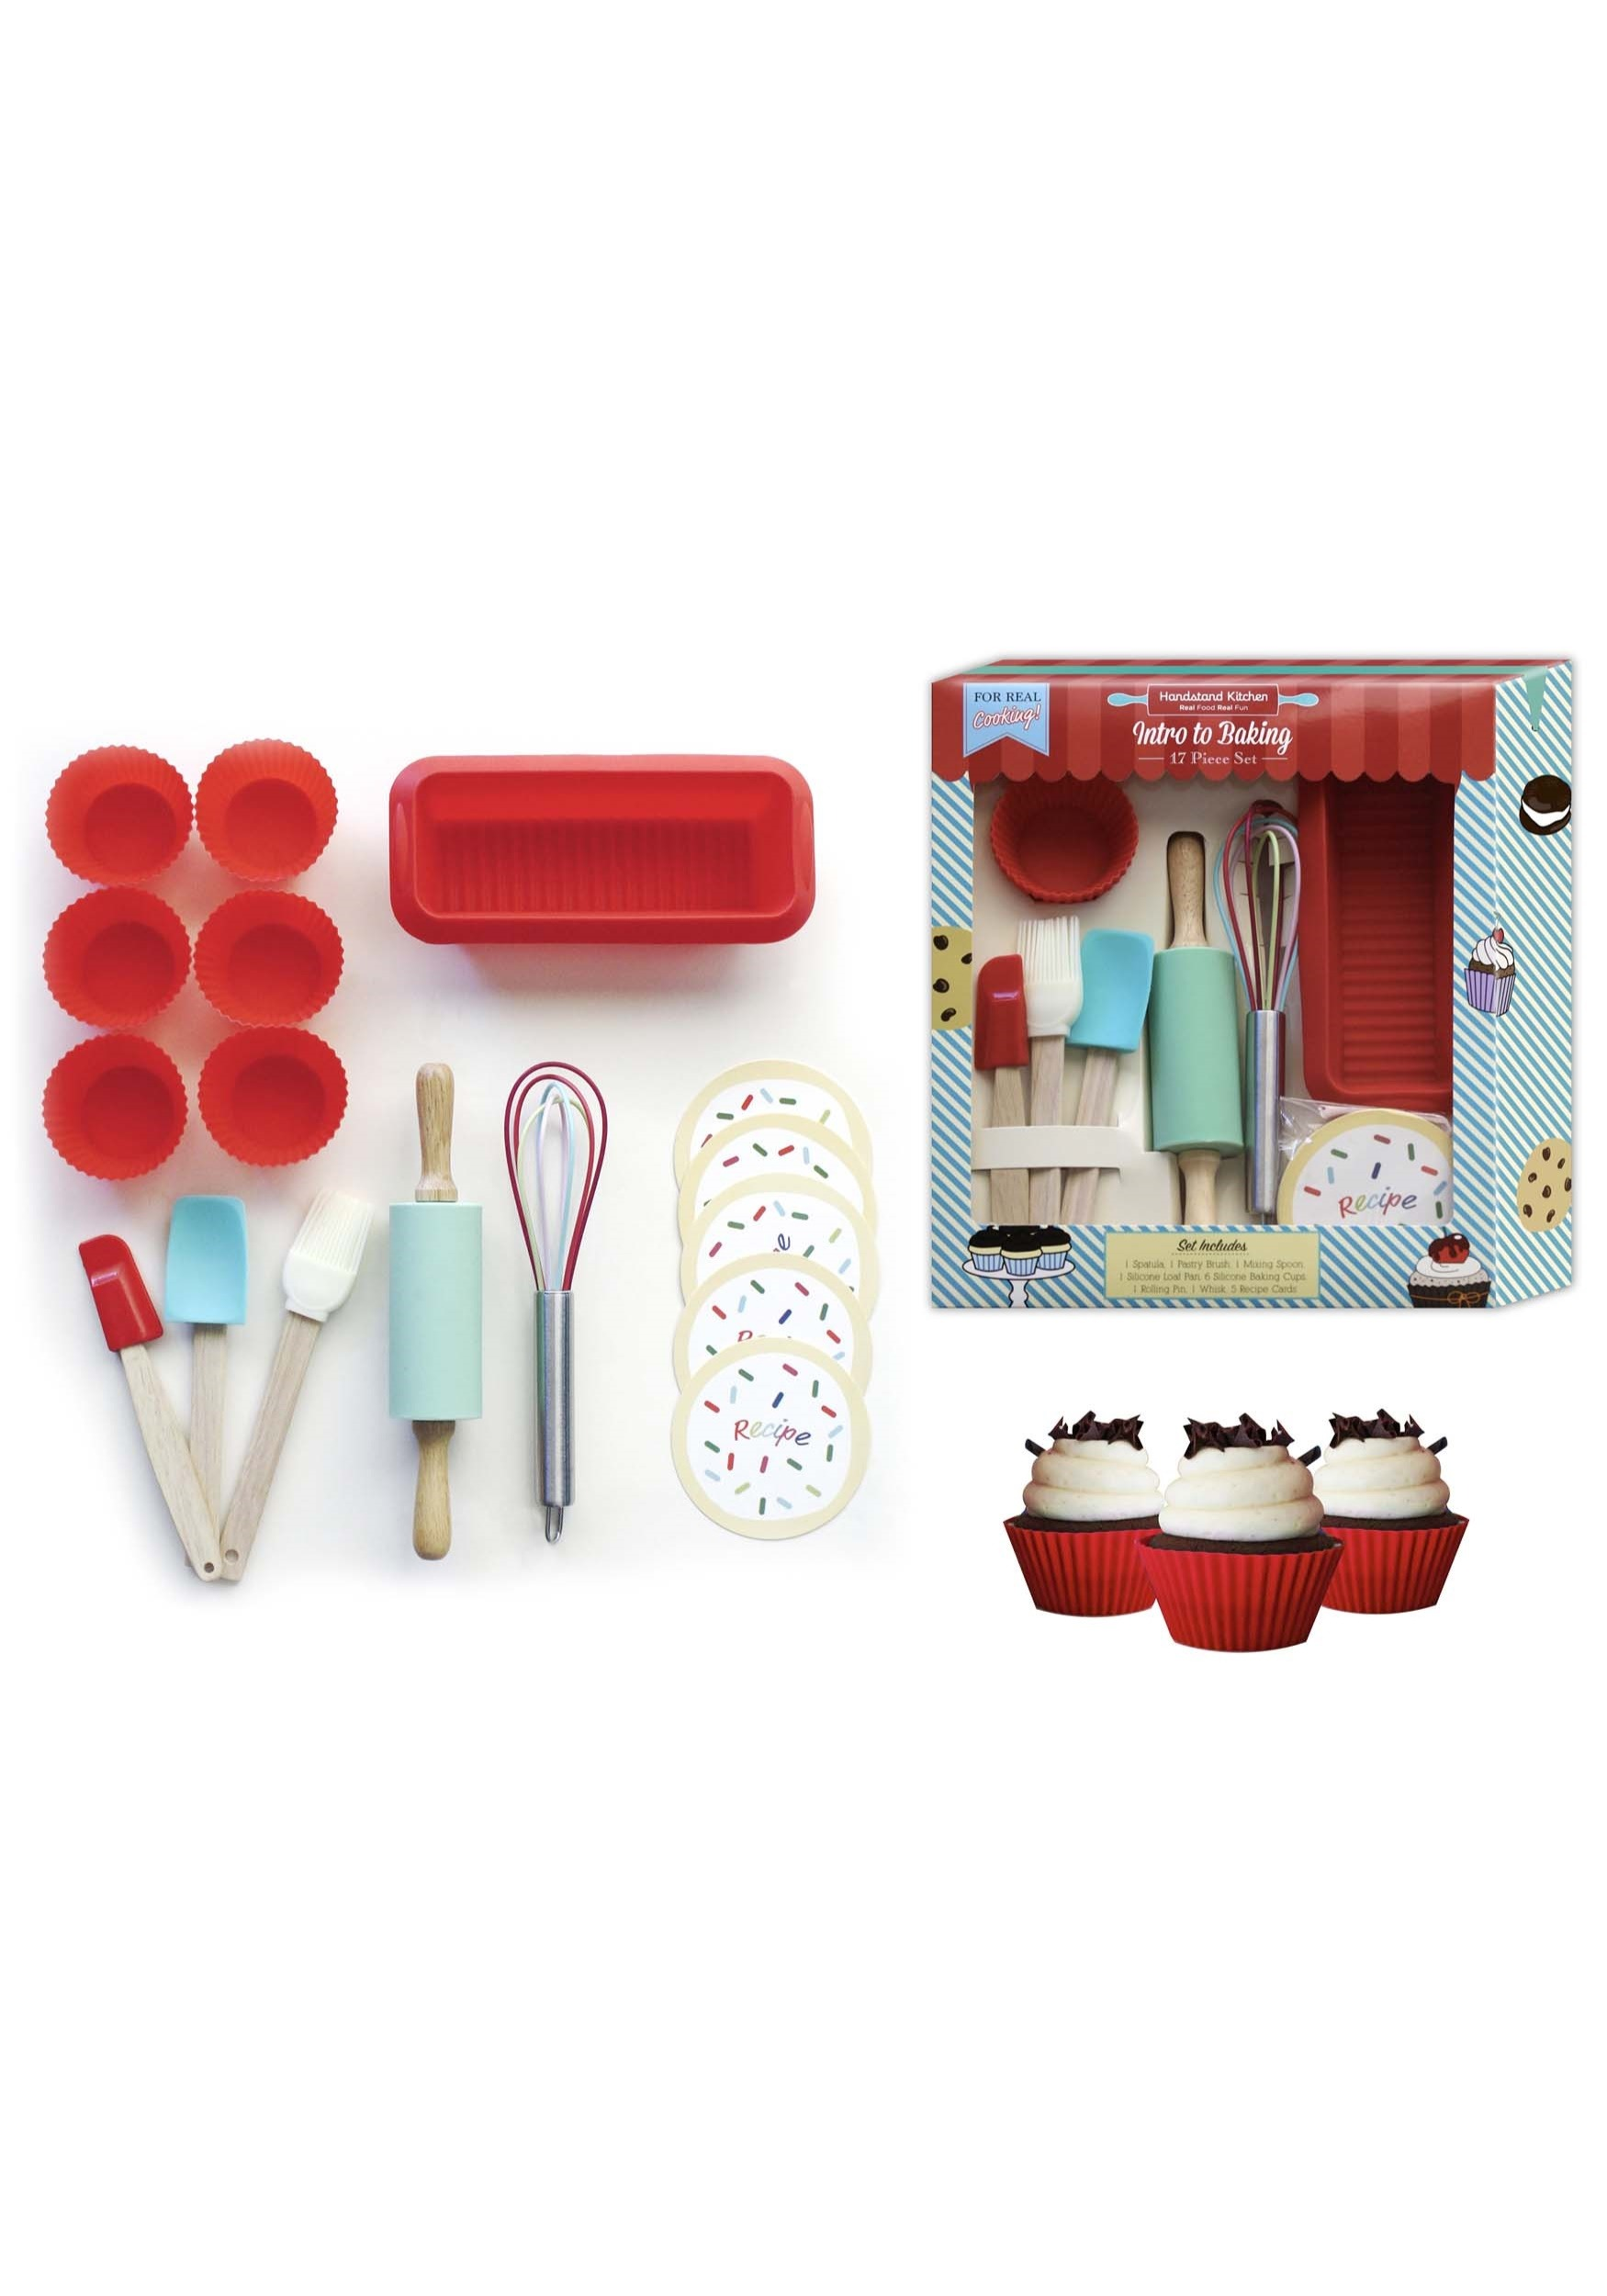 17 Piece Intro to Baking Set - 809e83be1da4cf8 , 17-Piece-Intro-to-Baking-Set-13428463 , 17 Piece Intro to Baking Set , Array , 13428463 , Playsets > Food & Drink > Kids > No Filter > unisex , HKIBKS-INTRO-ST